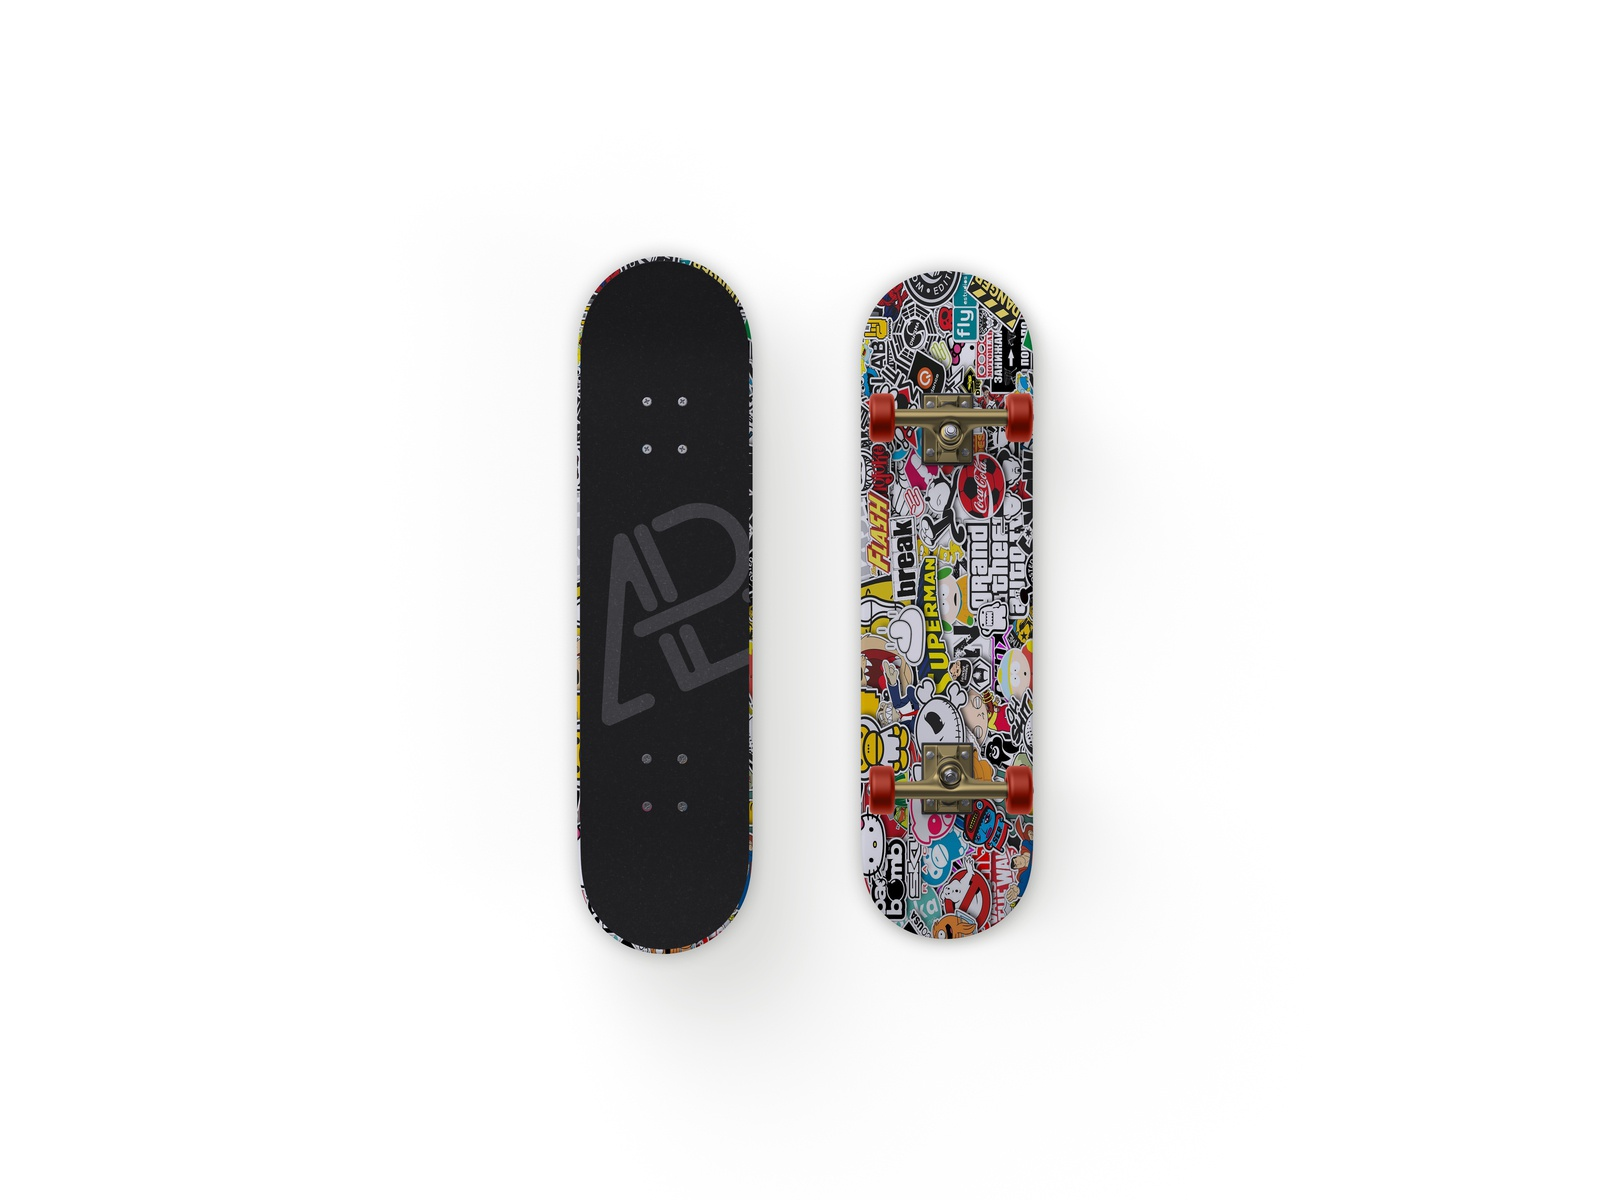 Front and back customizable skateboard mockup by anthony boyd graphics  1  4x